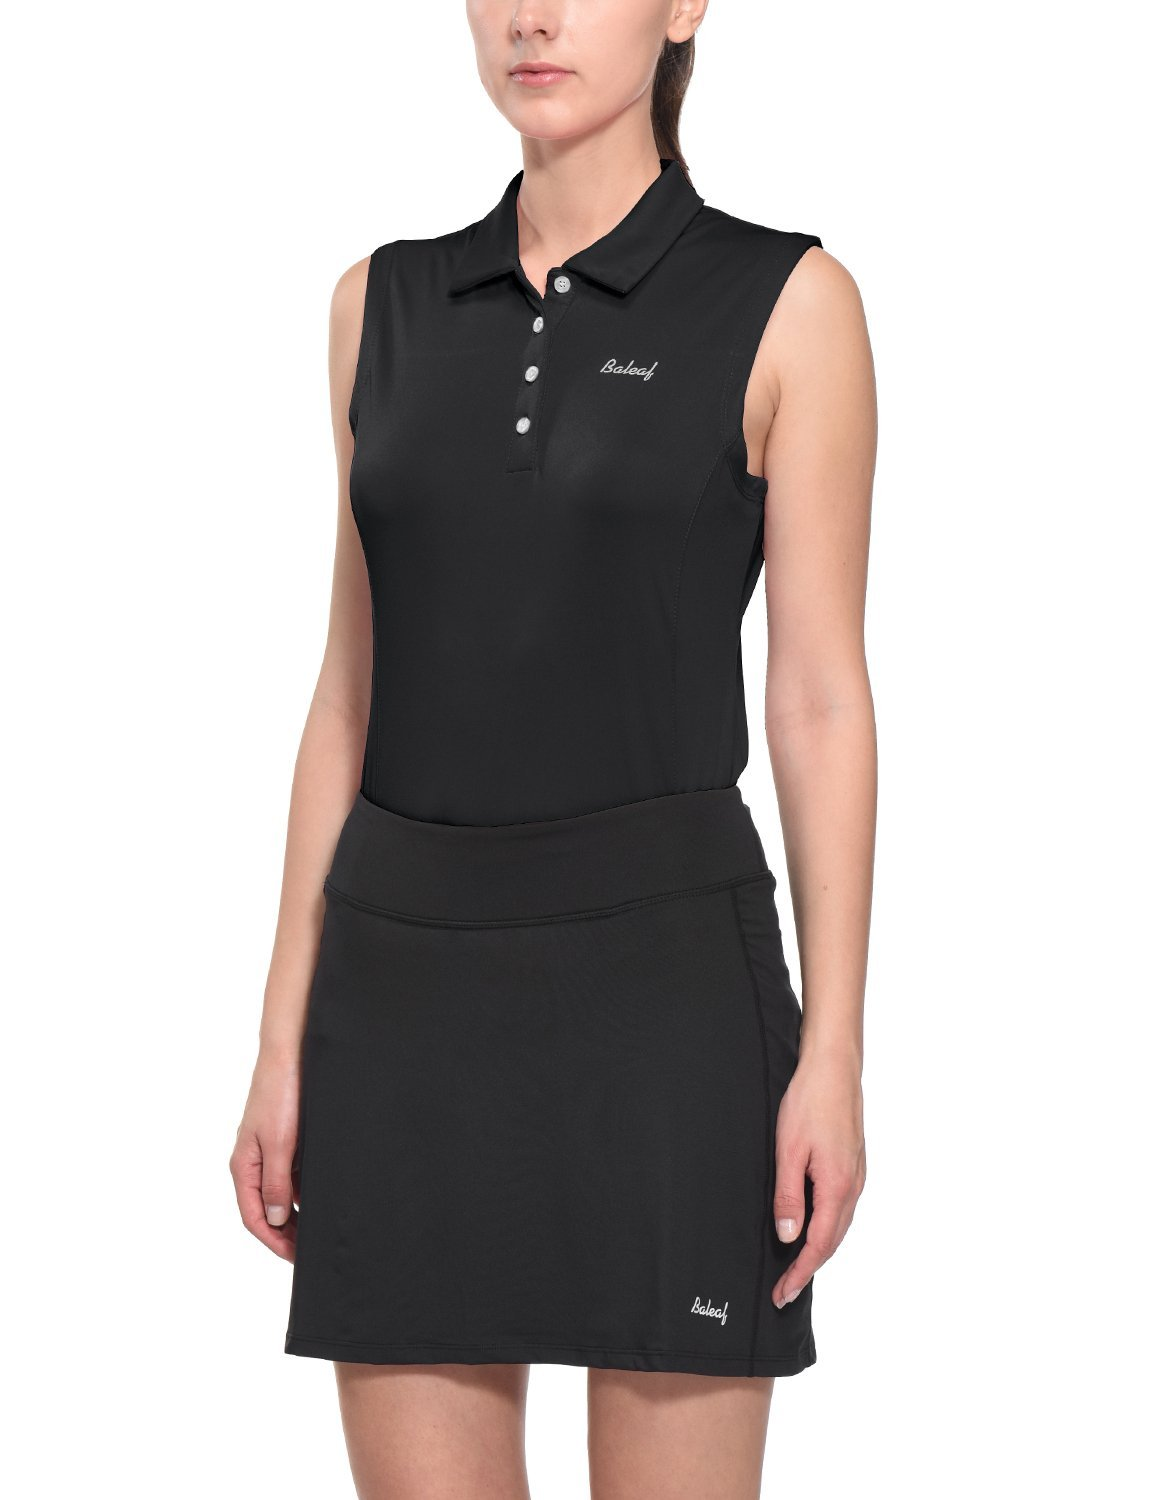 Baleaf Women's Quick Dry Performance Sleeveless Polo Shirts UPF 50+ Black Size L